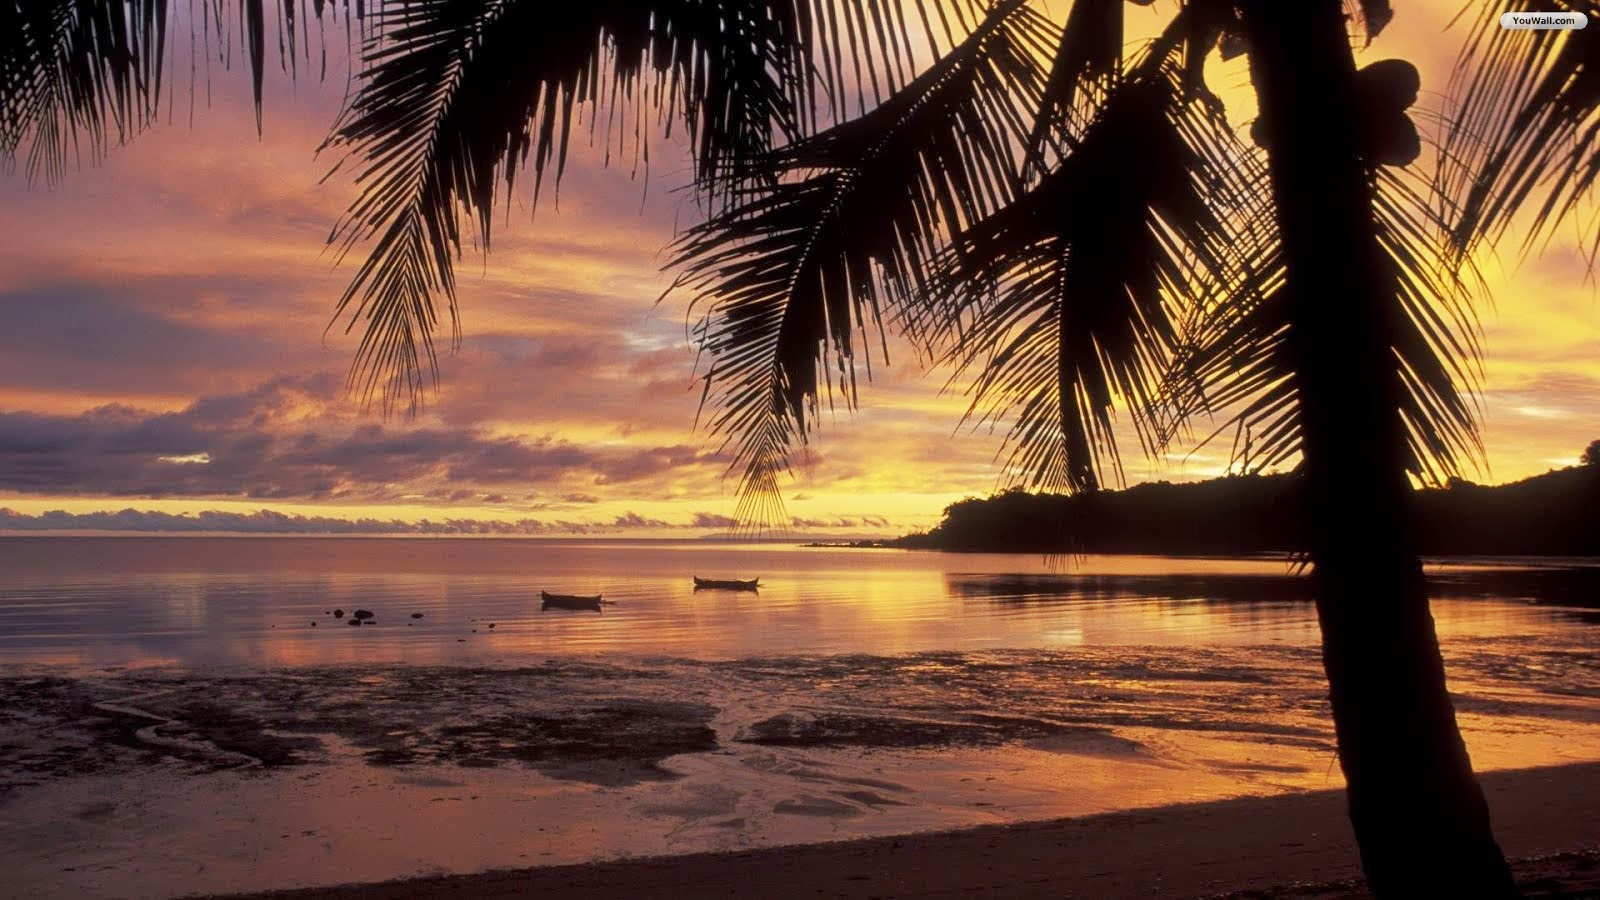 beautiful beach picture Beautiful Beach Sunset Wallpaper 1600x900